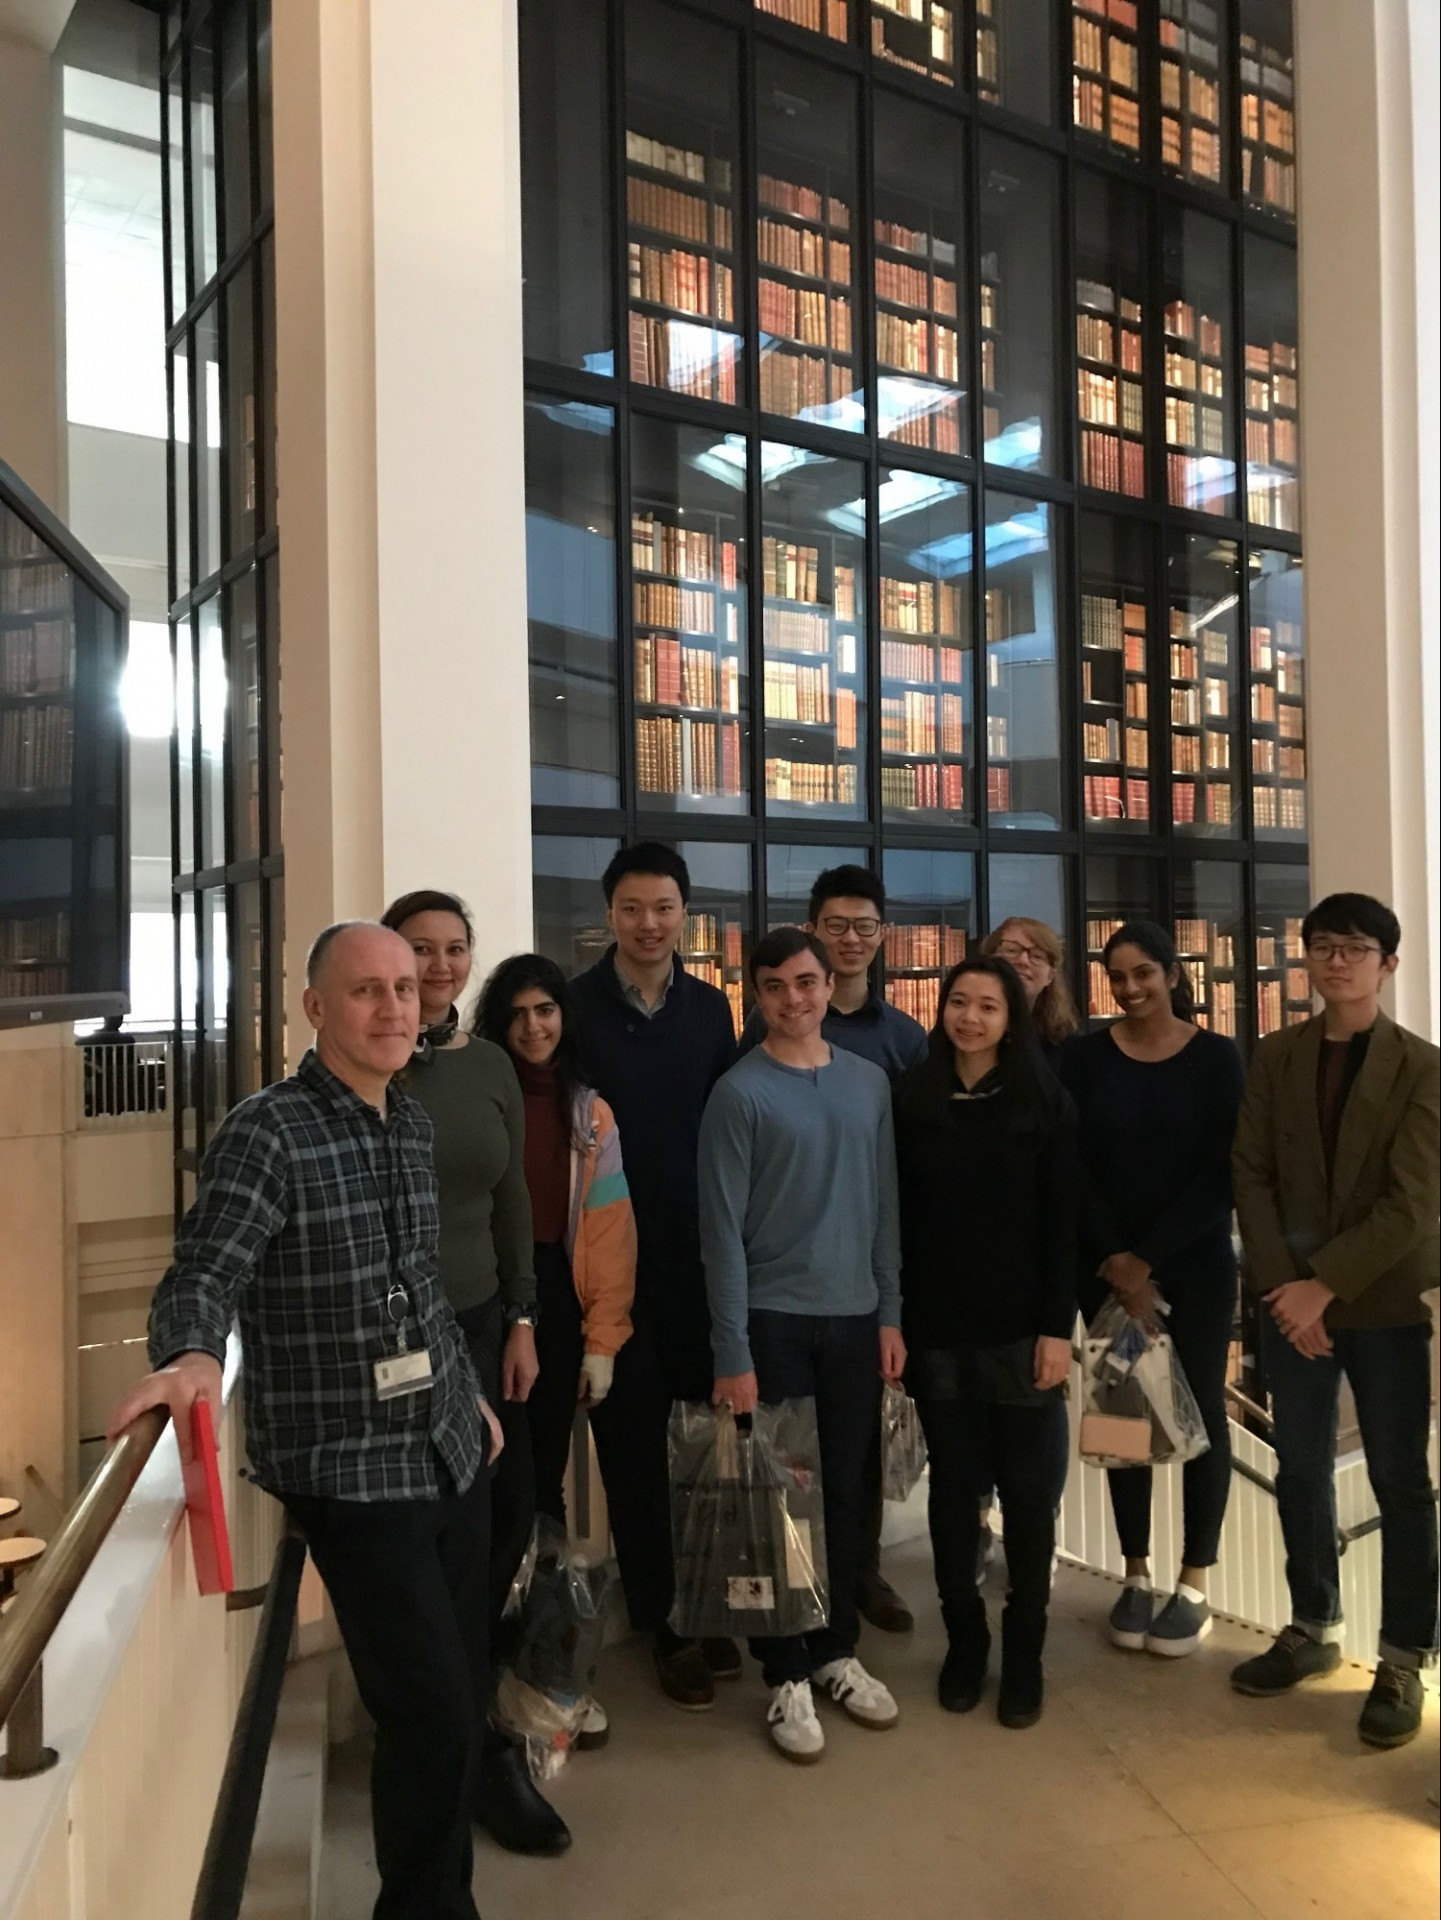 CWAR Fellows at The British Library